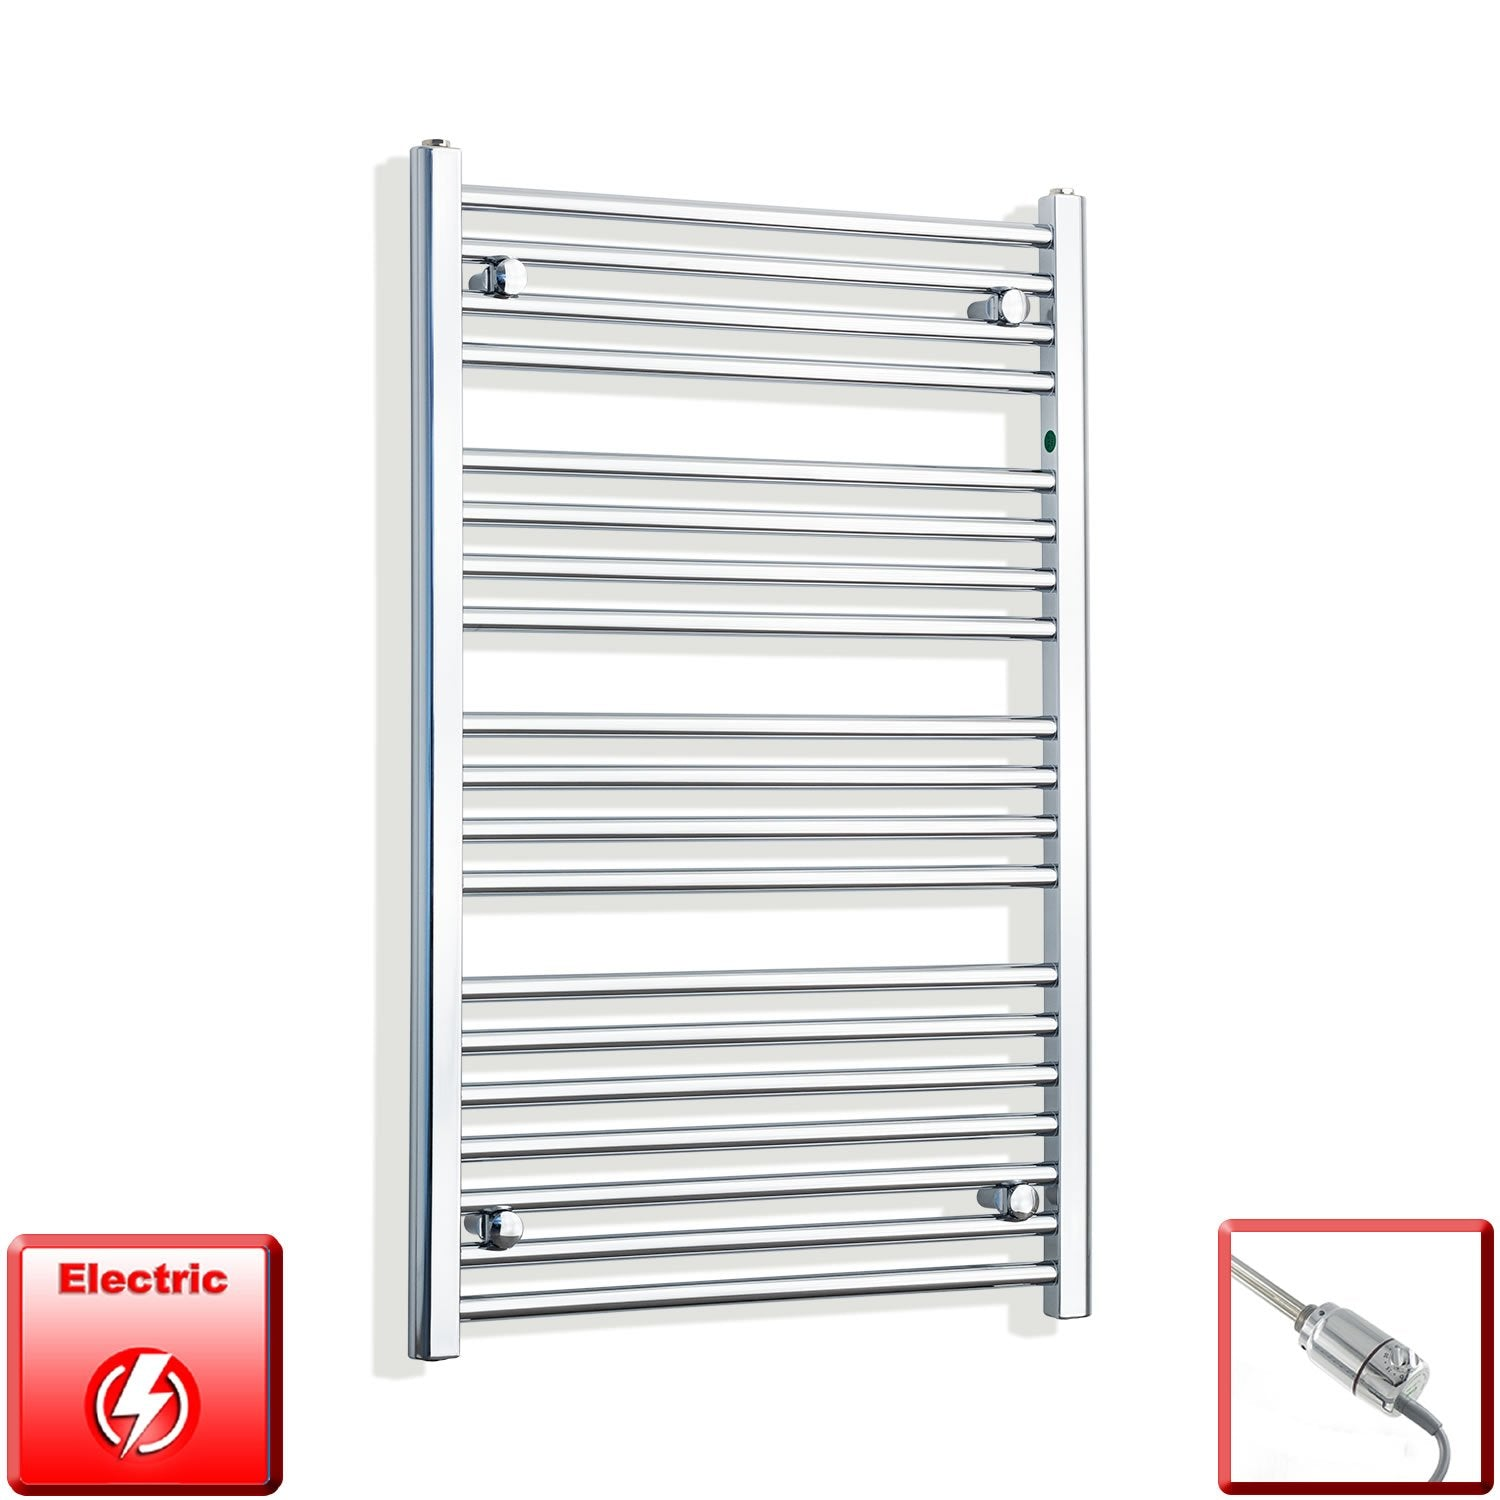 650mm Wide 1000mm High Flat Chrome Pre-Filled Electric Heated Towel Rail Radiator HTR,GT Thermostatic